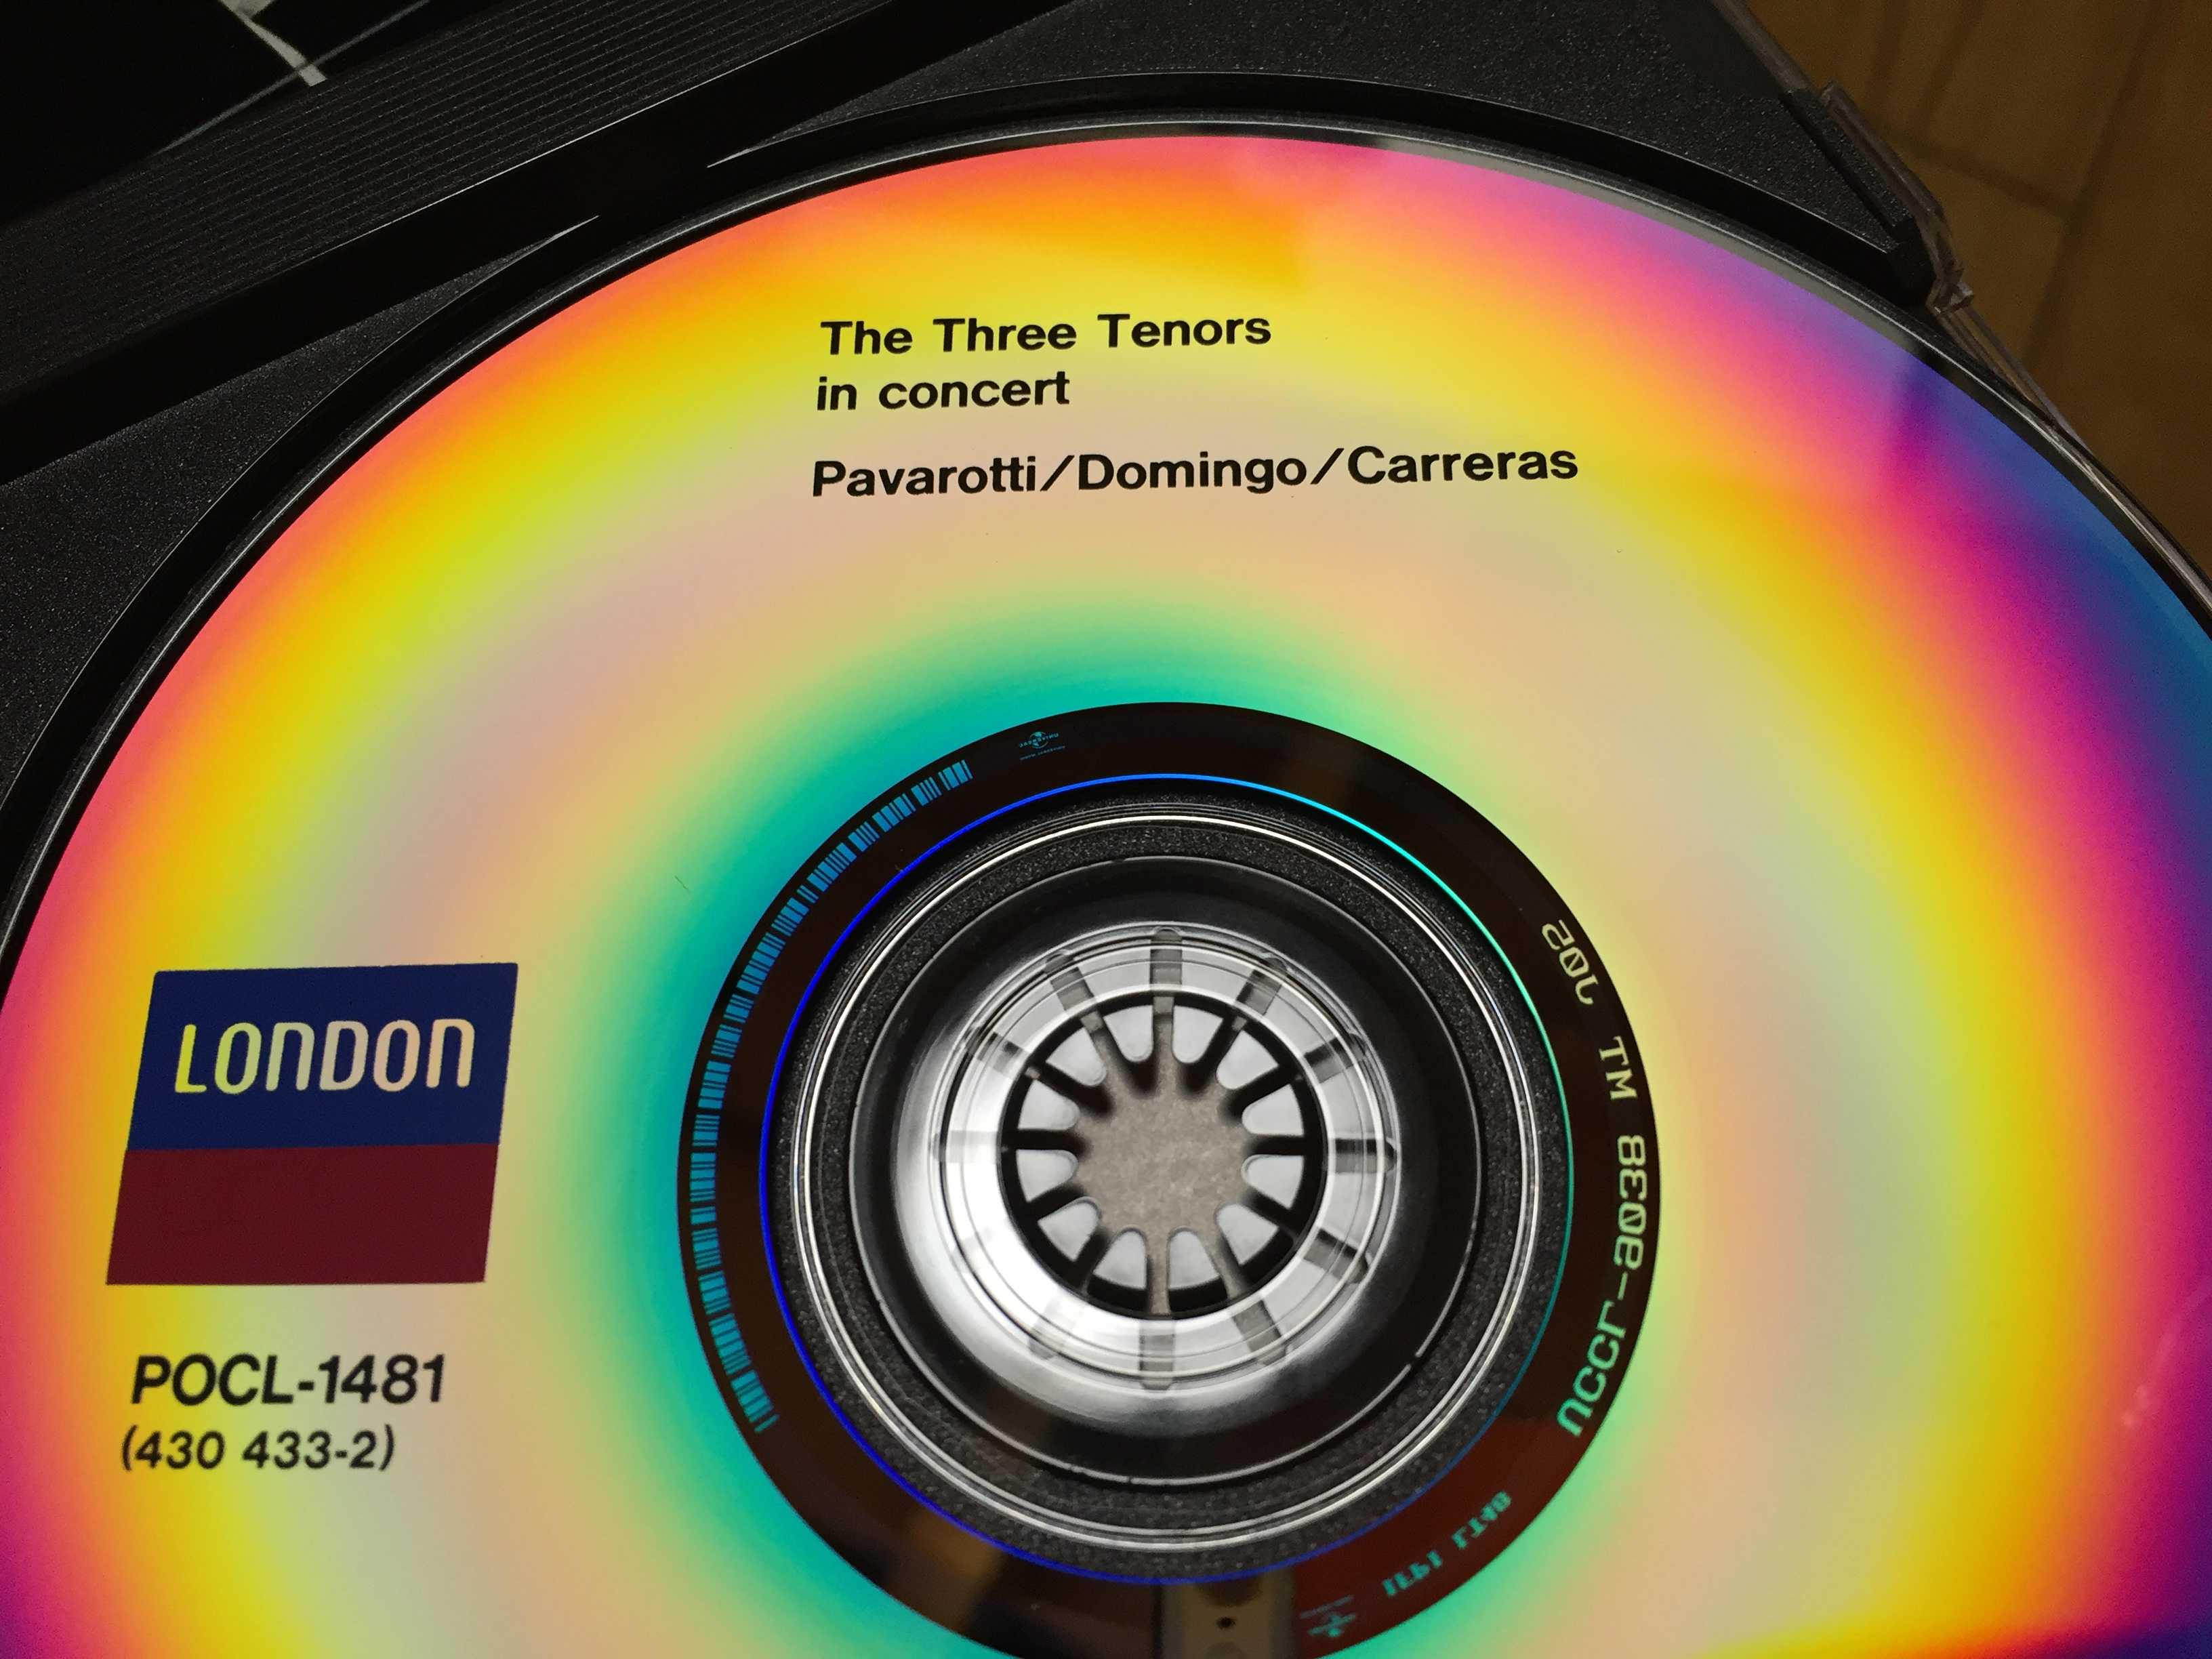 POCL-1481: The Three Tenors in concert - Pavarotti / Domingo / Carreras